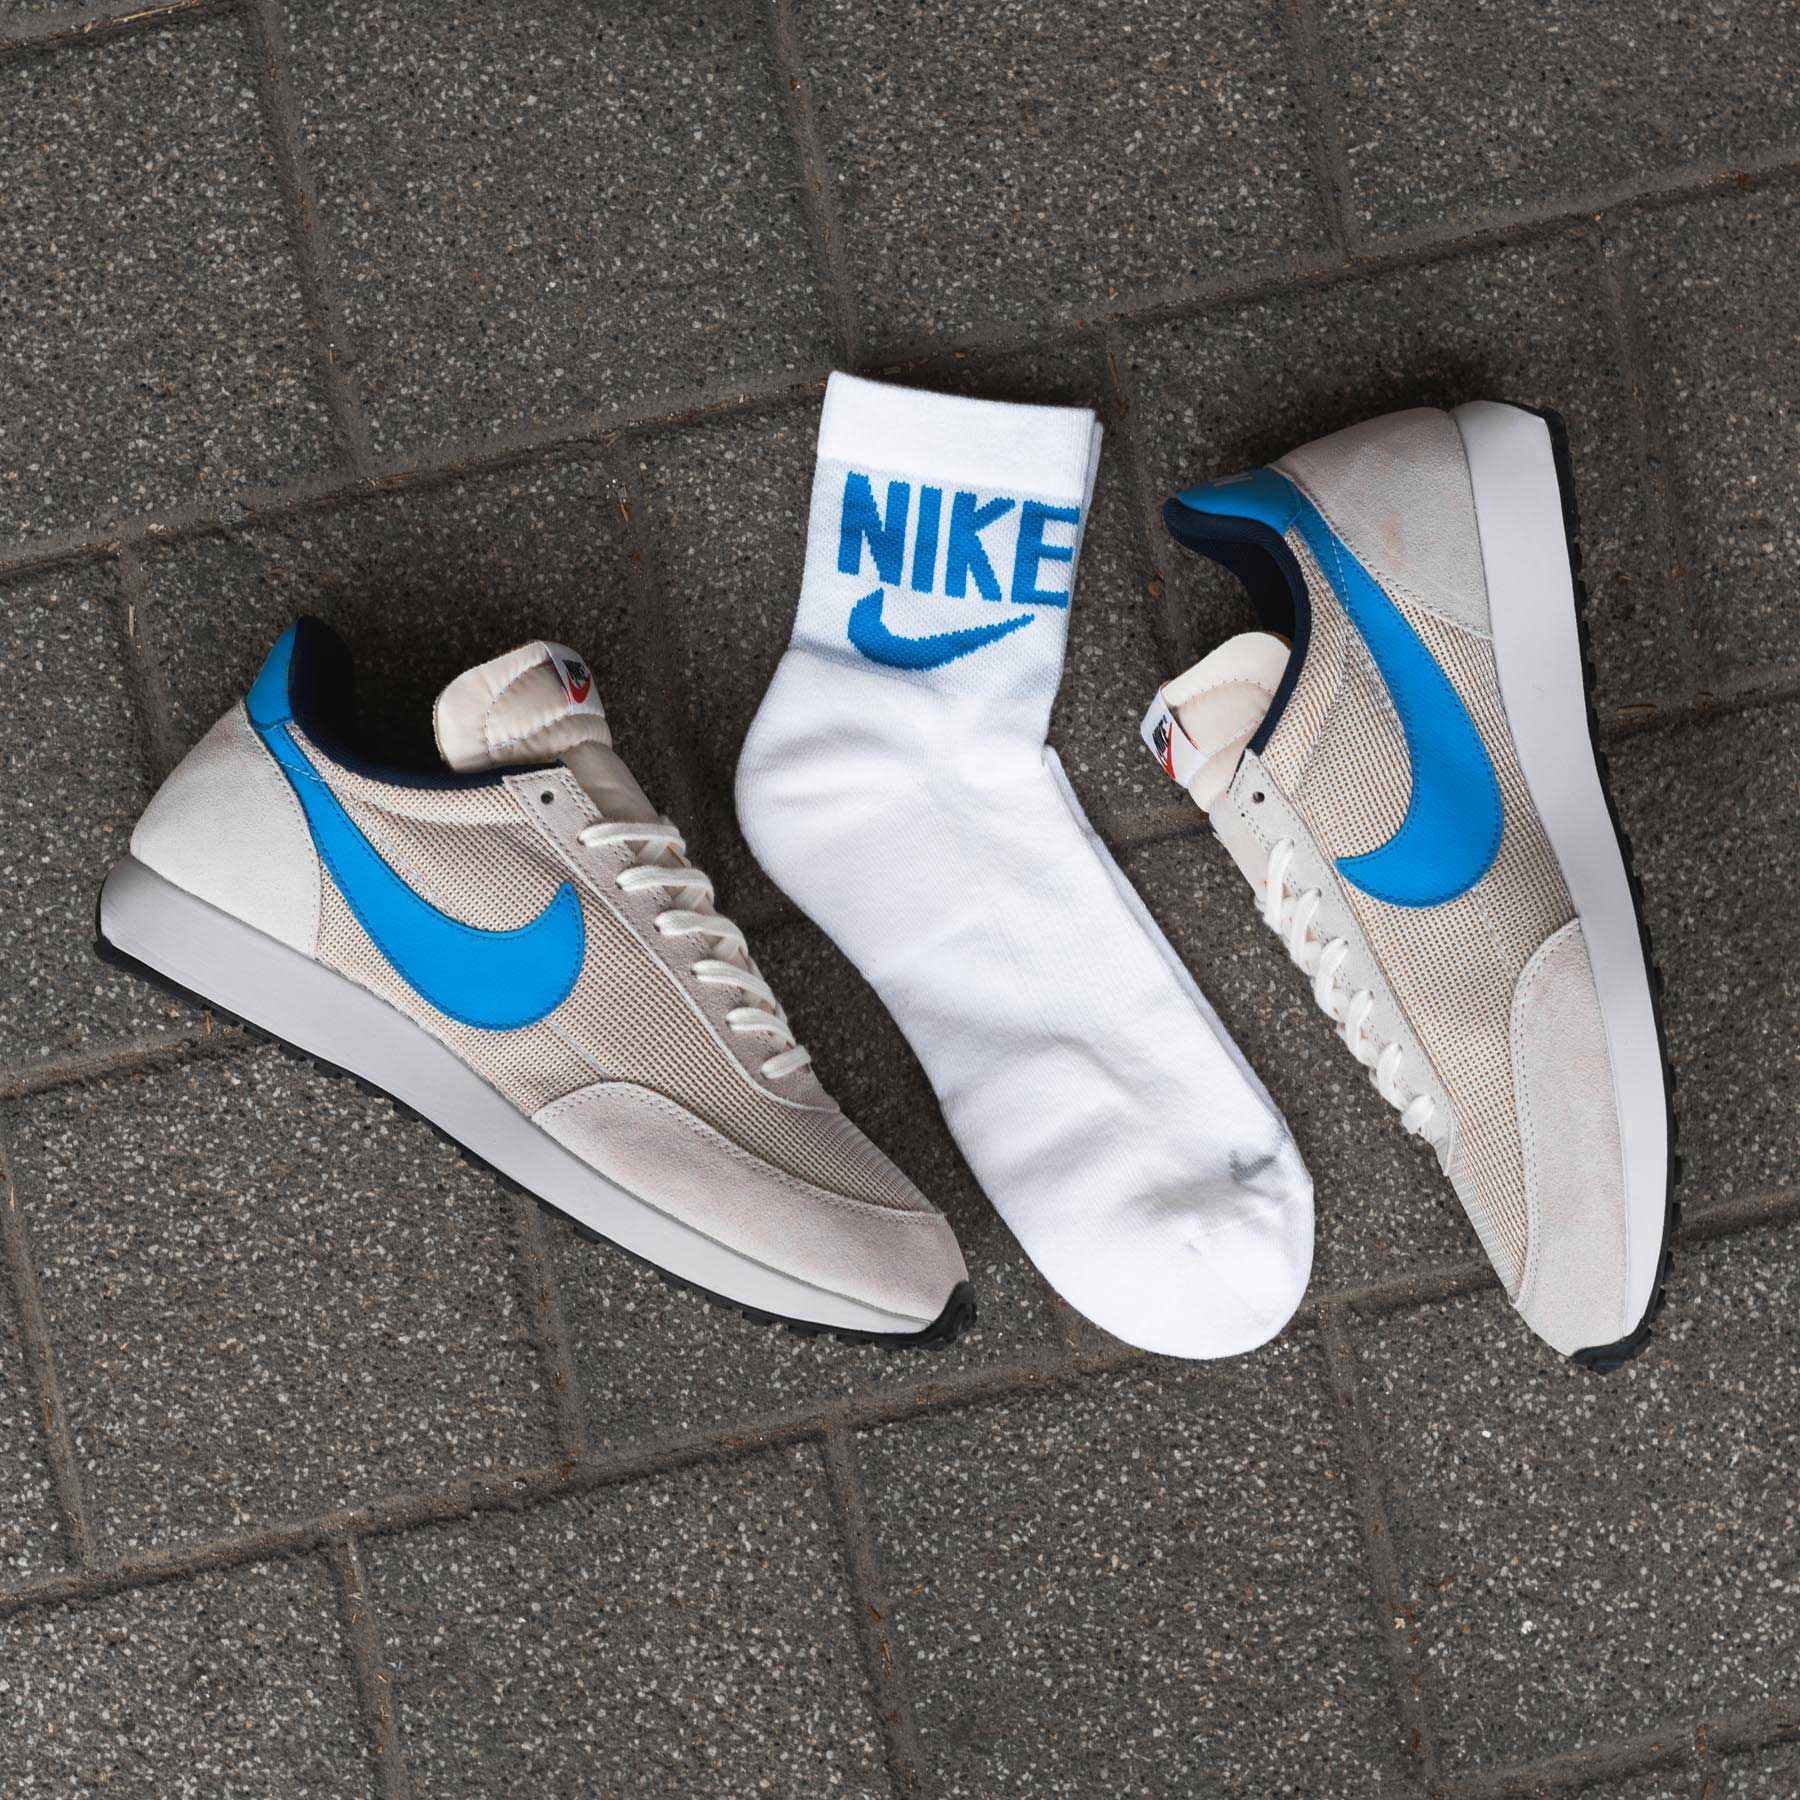 promo code 00946 a6836 Nike Air Tailwind: Everything You Need to Know and More